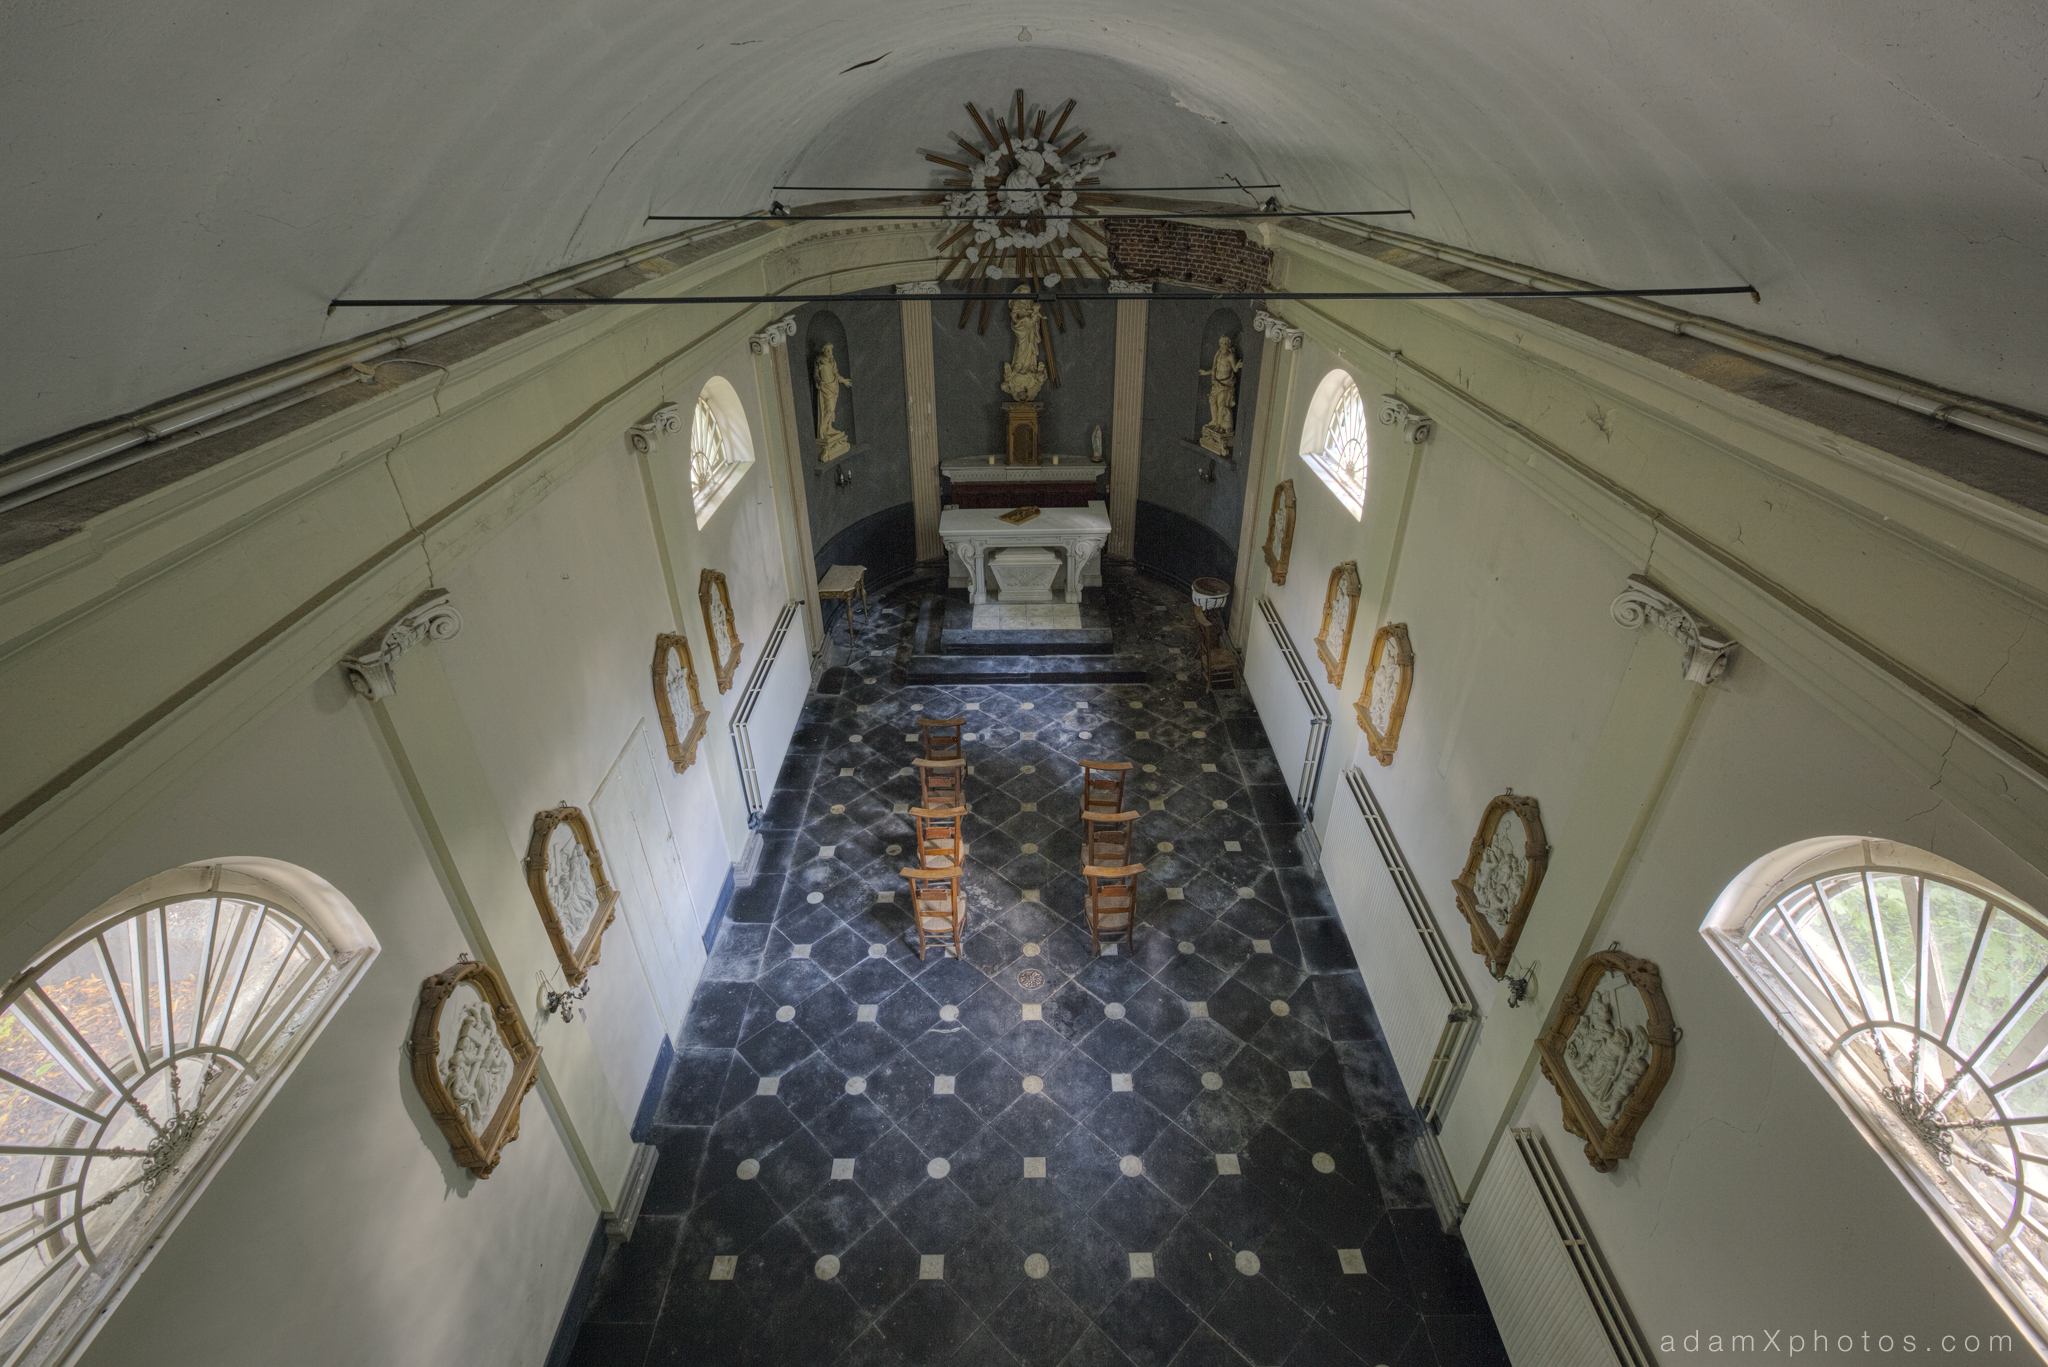 Adam X Chateau de la Chapelle urbex urban exploration belgium abandoned chapel